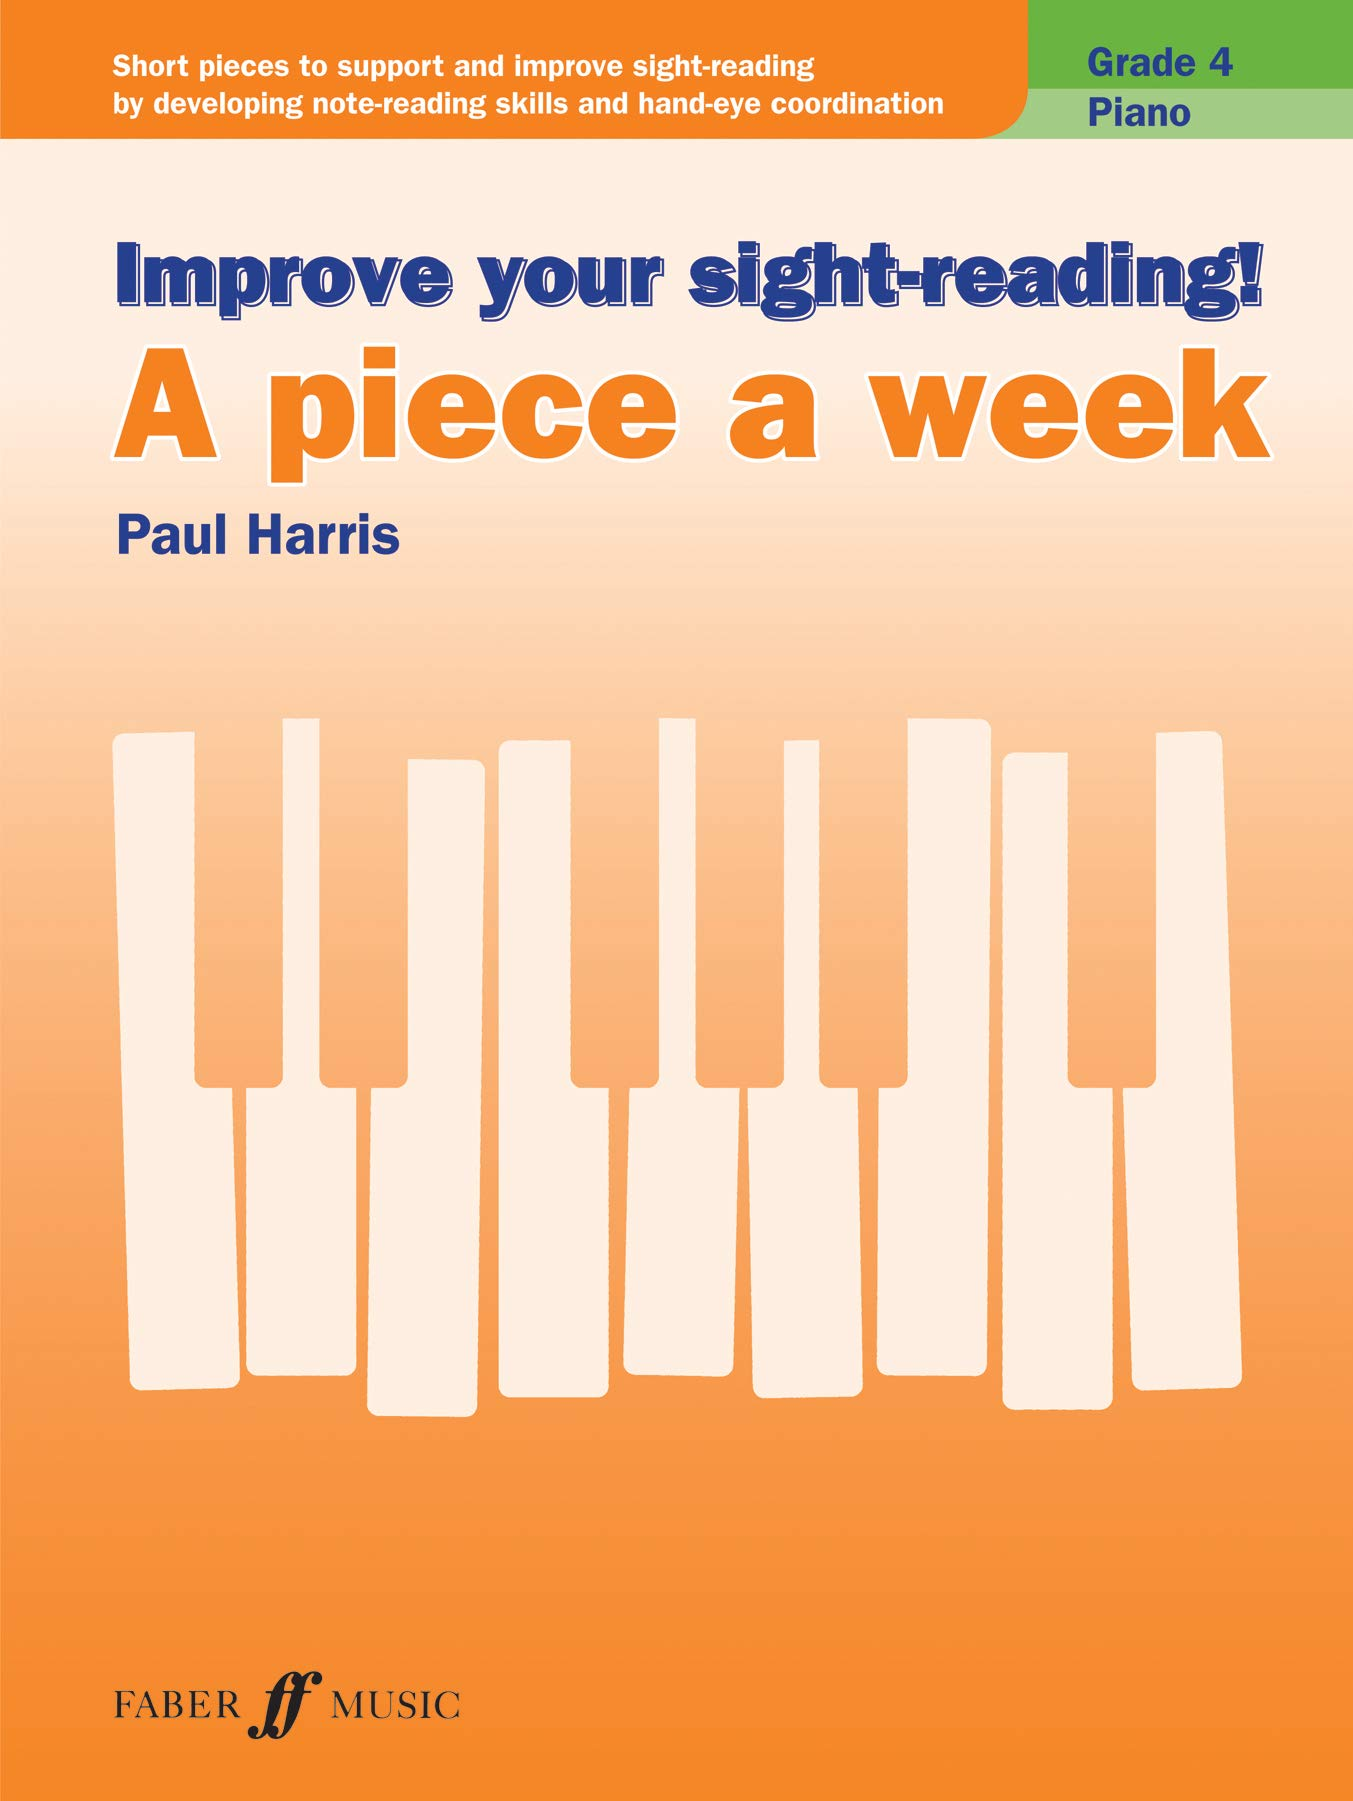 Grade 4 Improve Your Sight-Reading